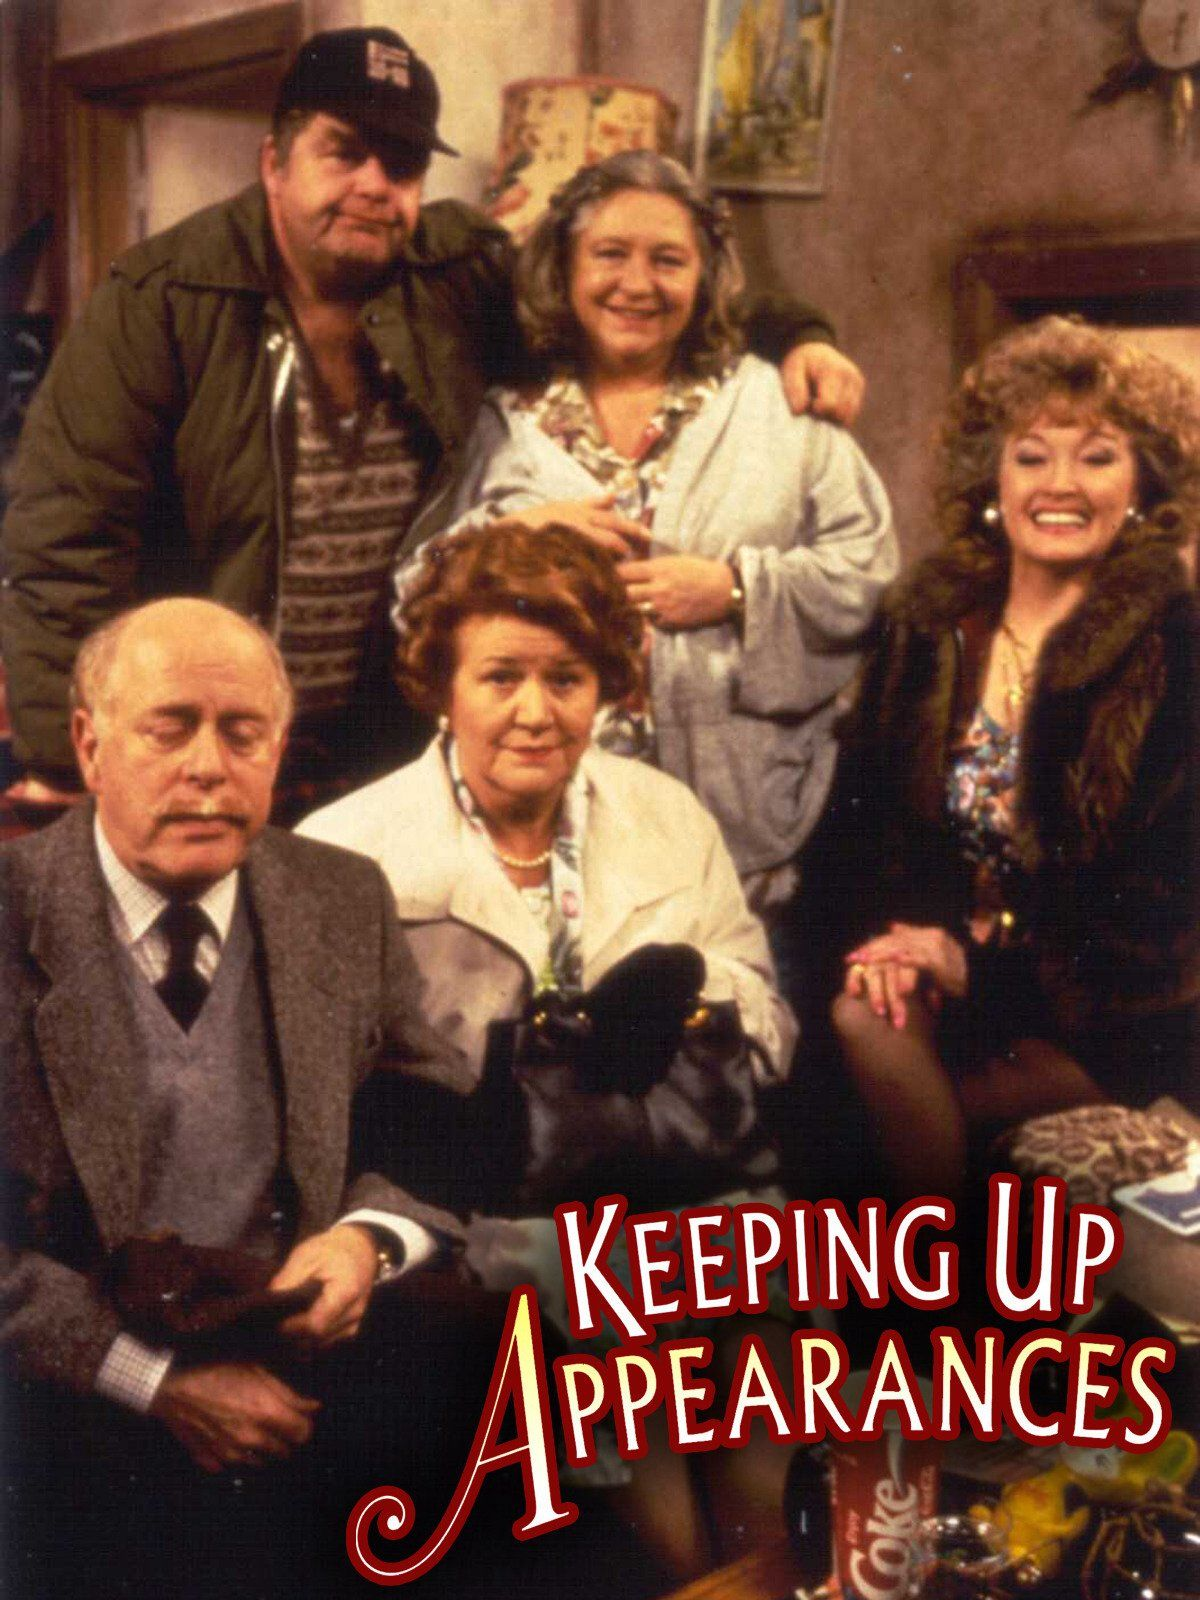 an analysis of keeping up appearances in todays world Keeping up appearances  academics were discussing the developments in social network analysis at the annual meeting of the united kingdom social networks association  the diamond jubilee.